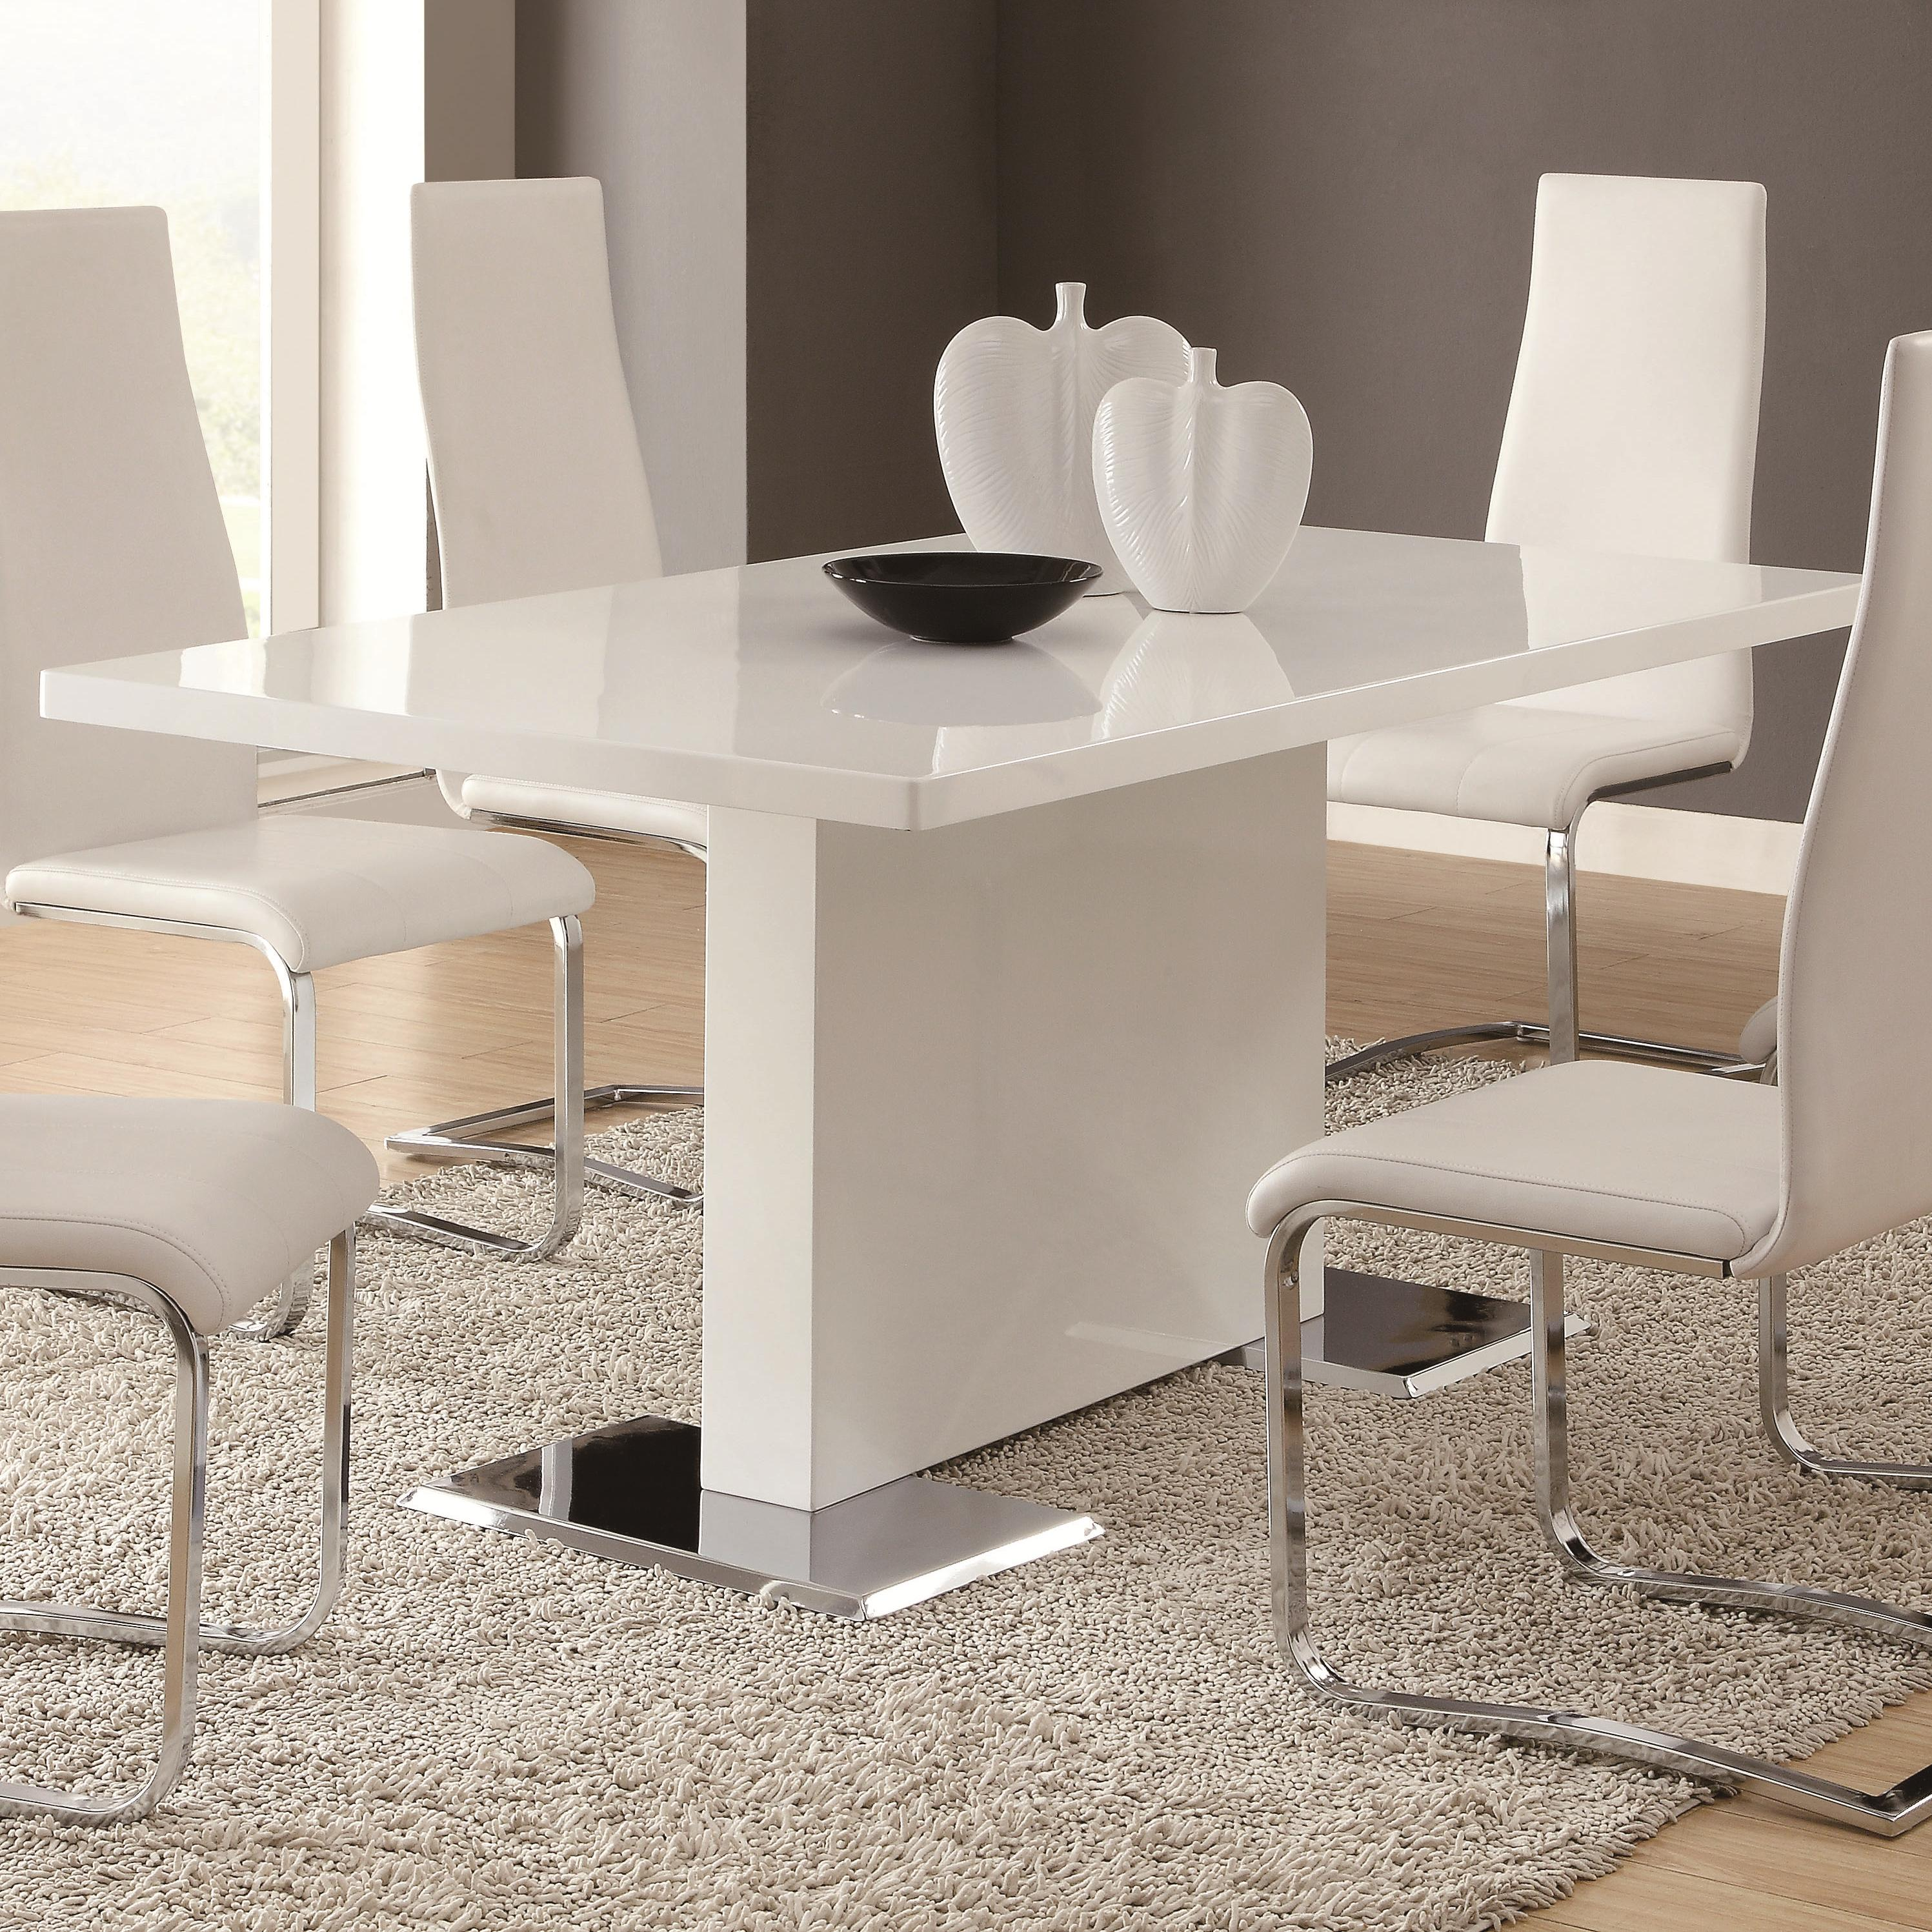 Coaster modern dining 102310 white dining table with for Modern white dining table and chairs